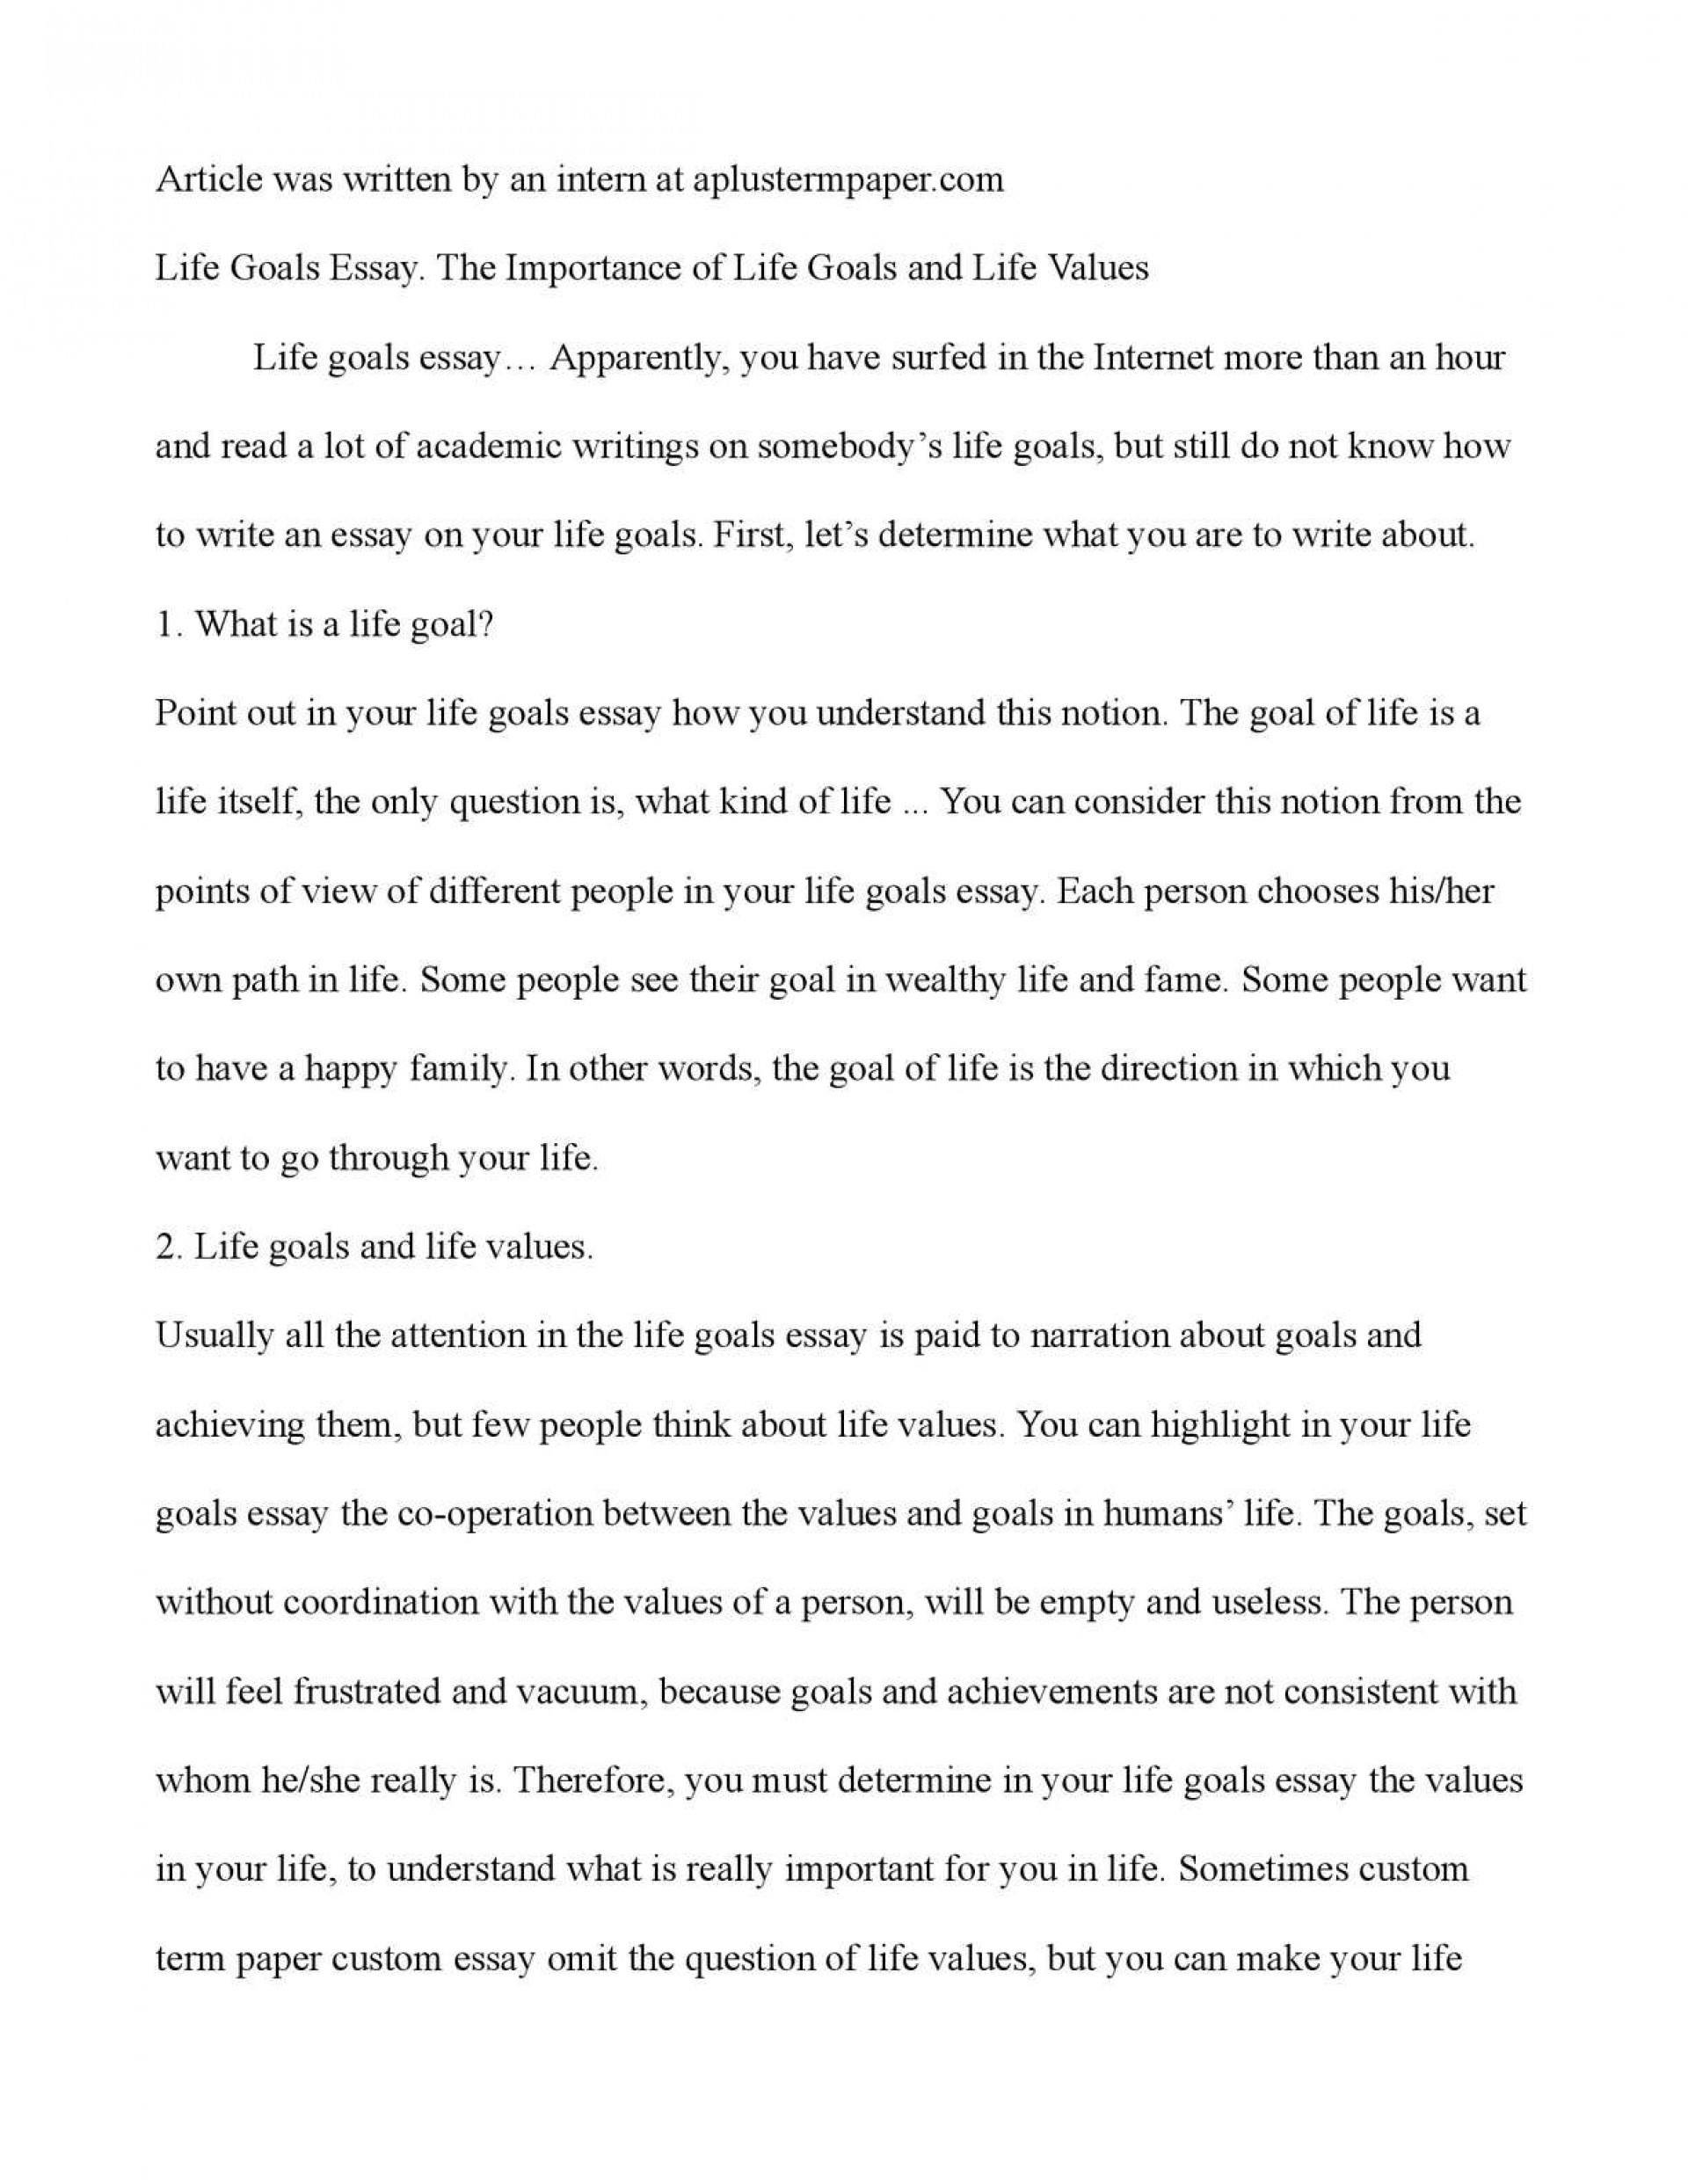 007 Career Goals Essay P1 Fantastic Future Scholarship Business Administration Mba For Fms 1920